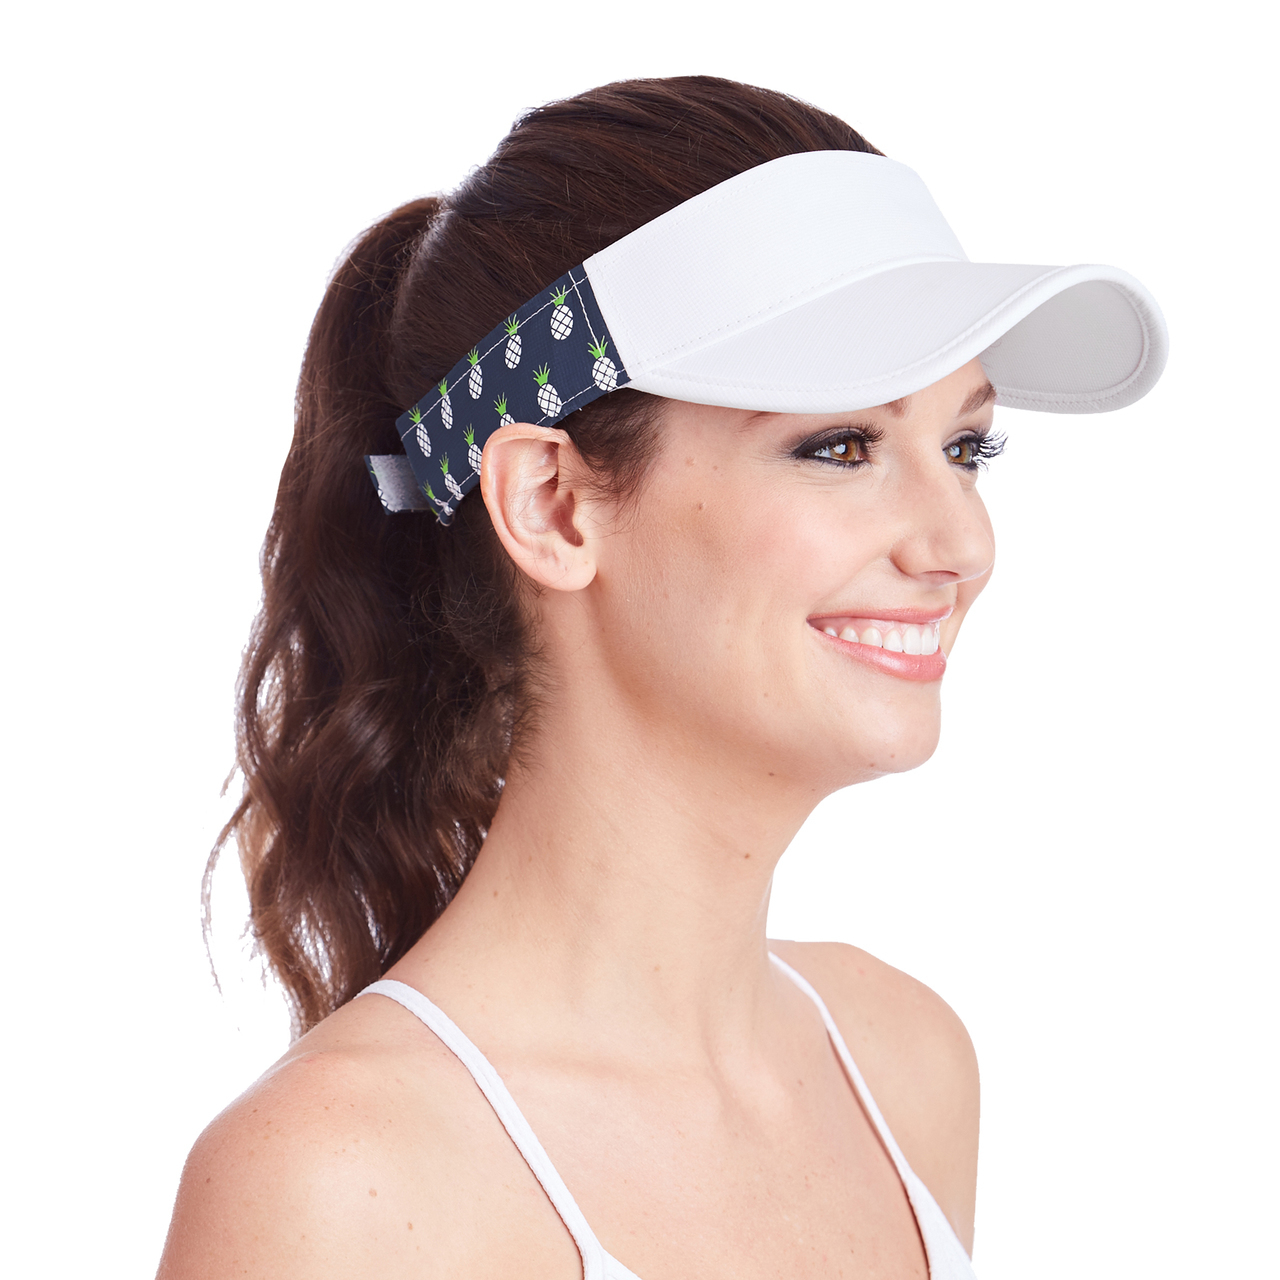 Accessories - Page 1 - Fore Ladies Golf - Women s Golf Clothes and ... 9d710f3b7b8